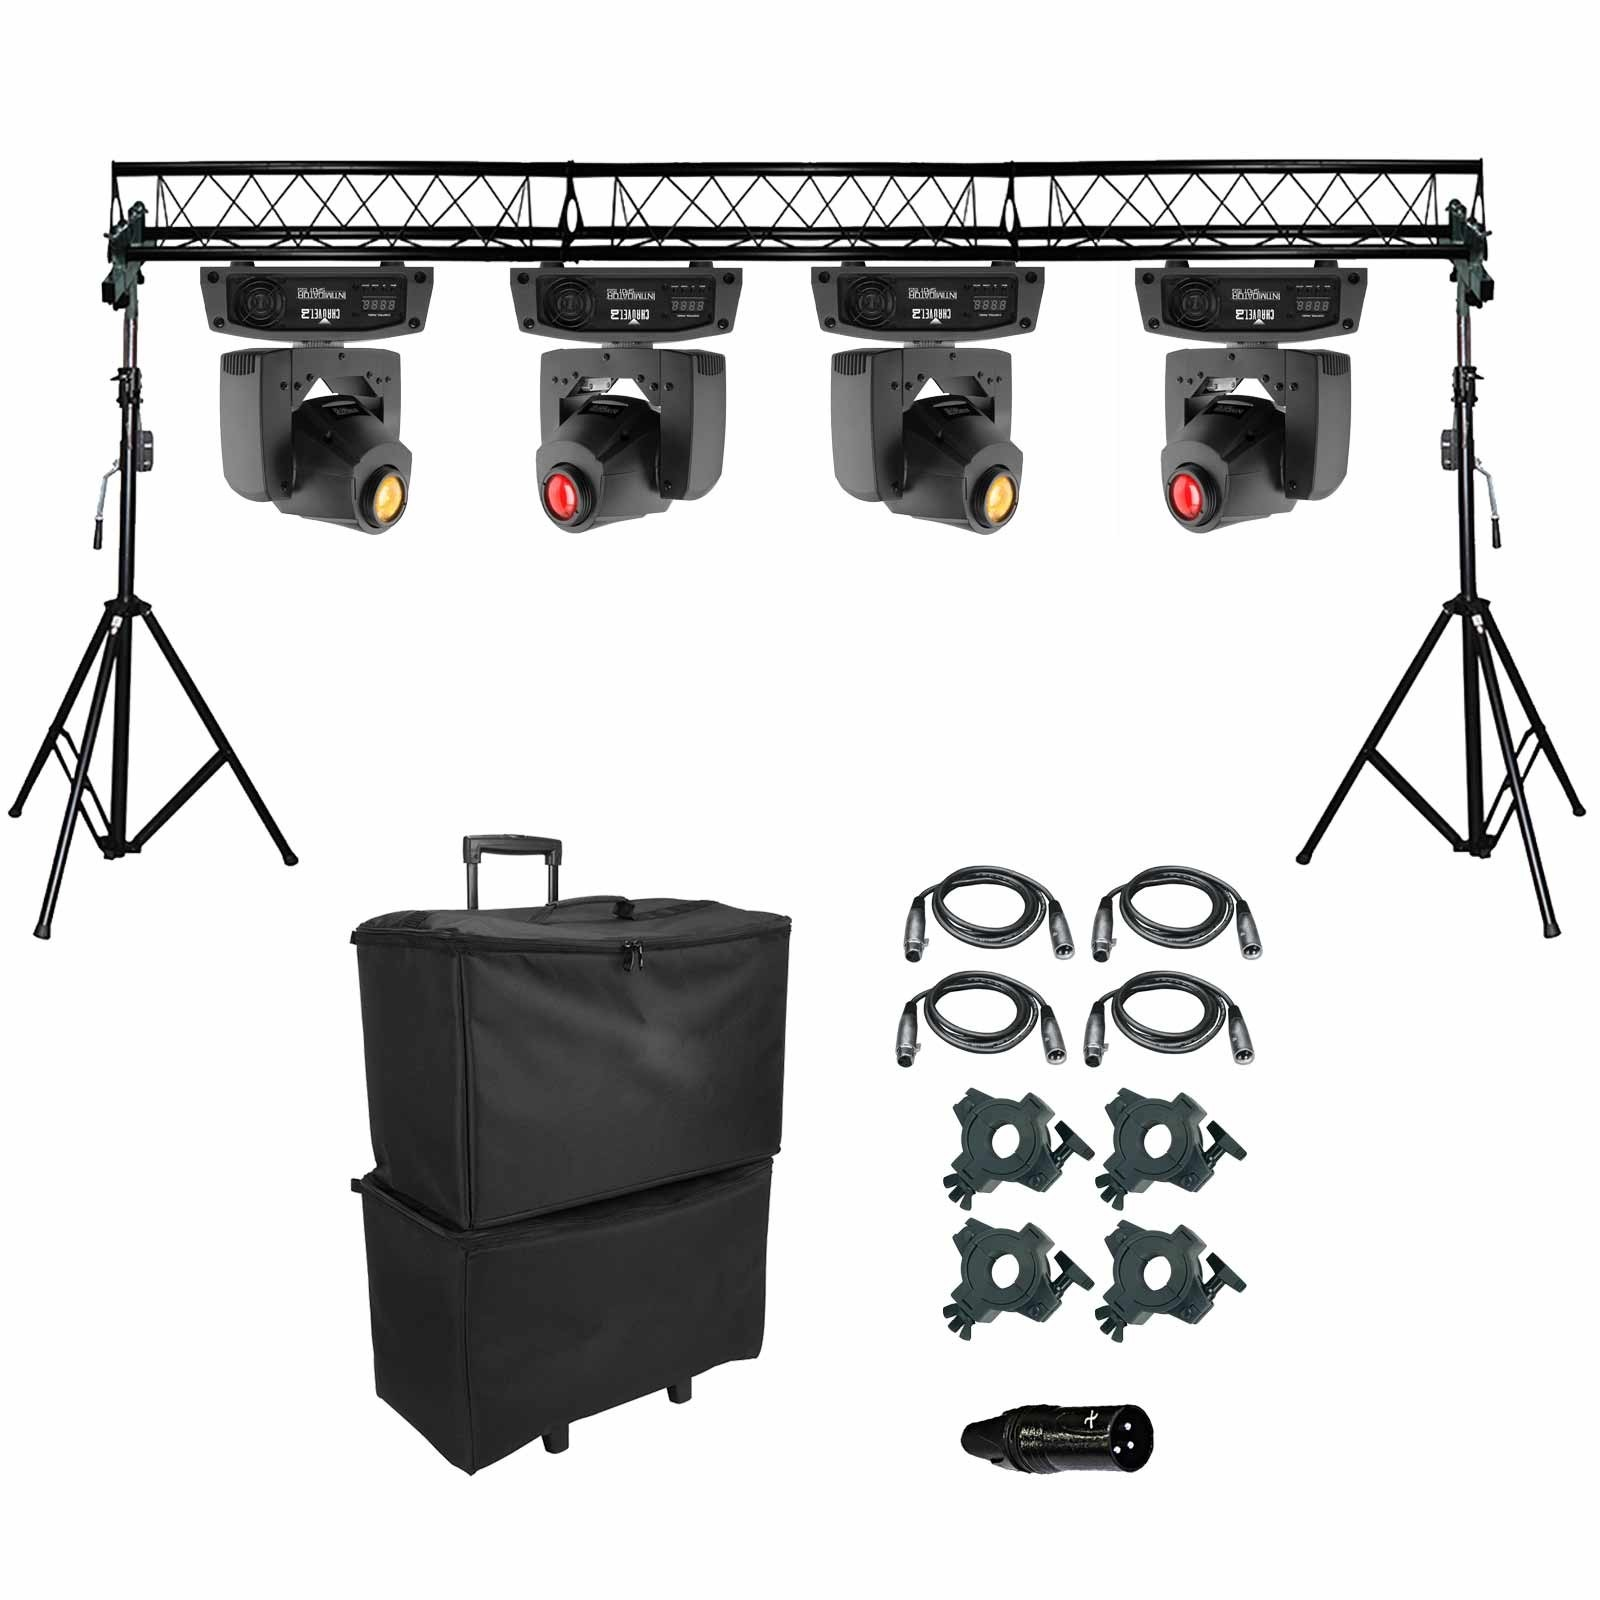 4 chauvet dj intimidator spot 155 led moving heads for Lighting packages for new homes